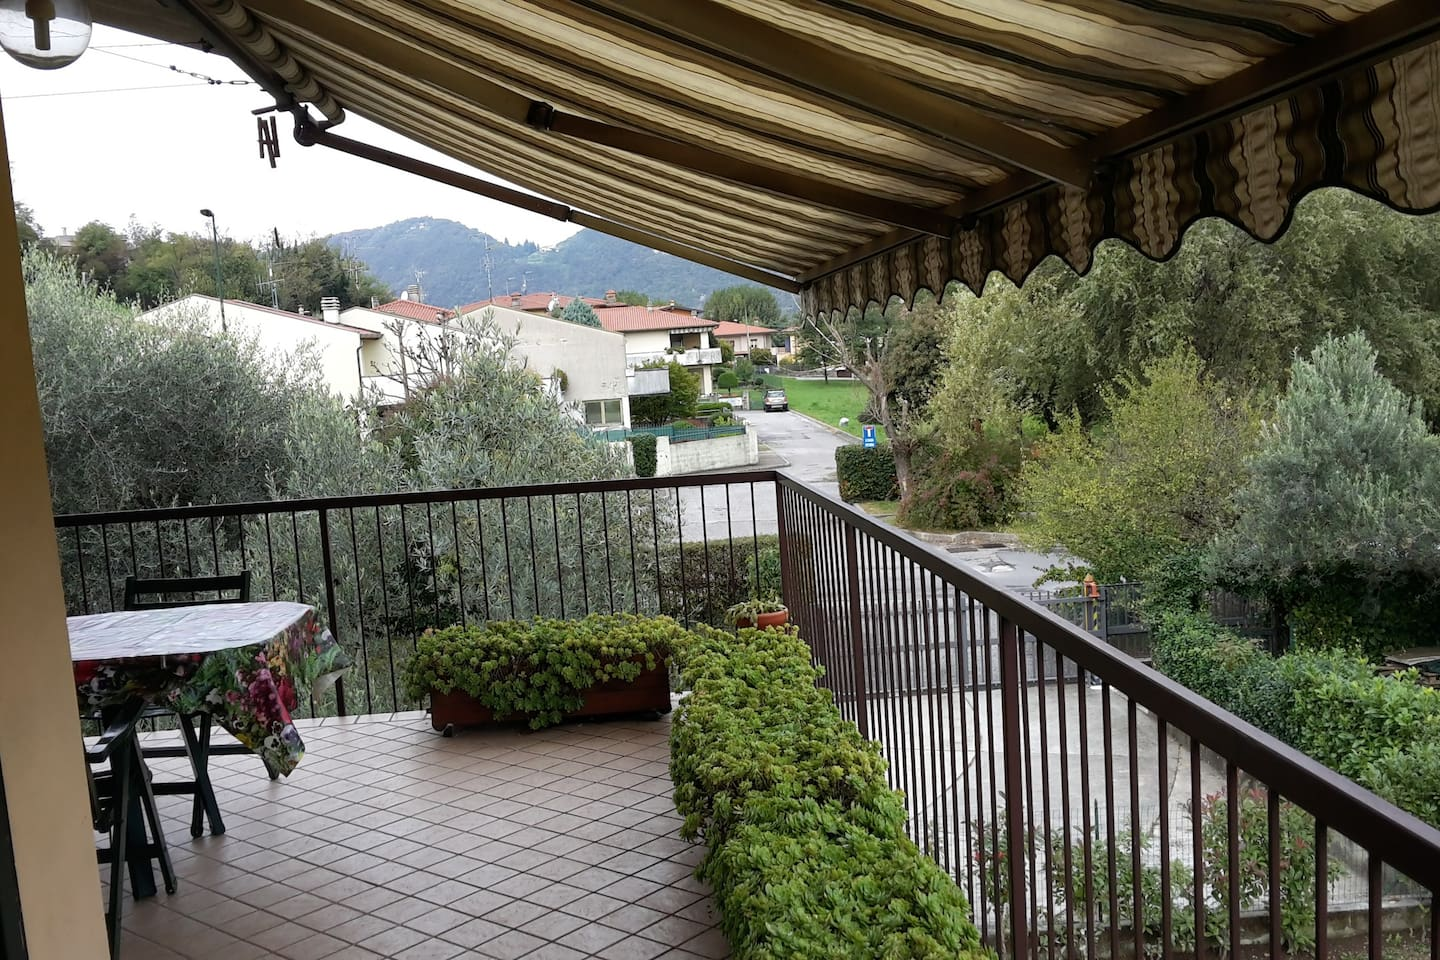 Part of the terrace